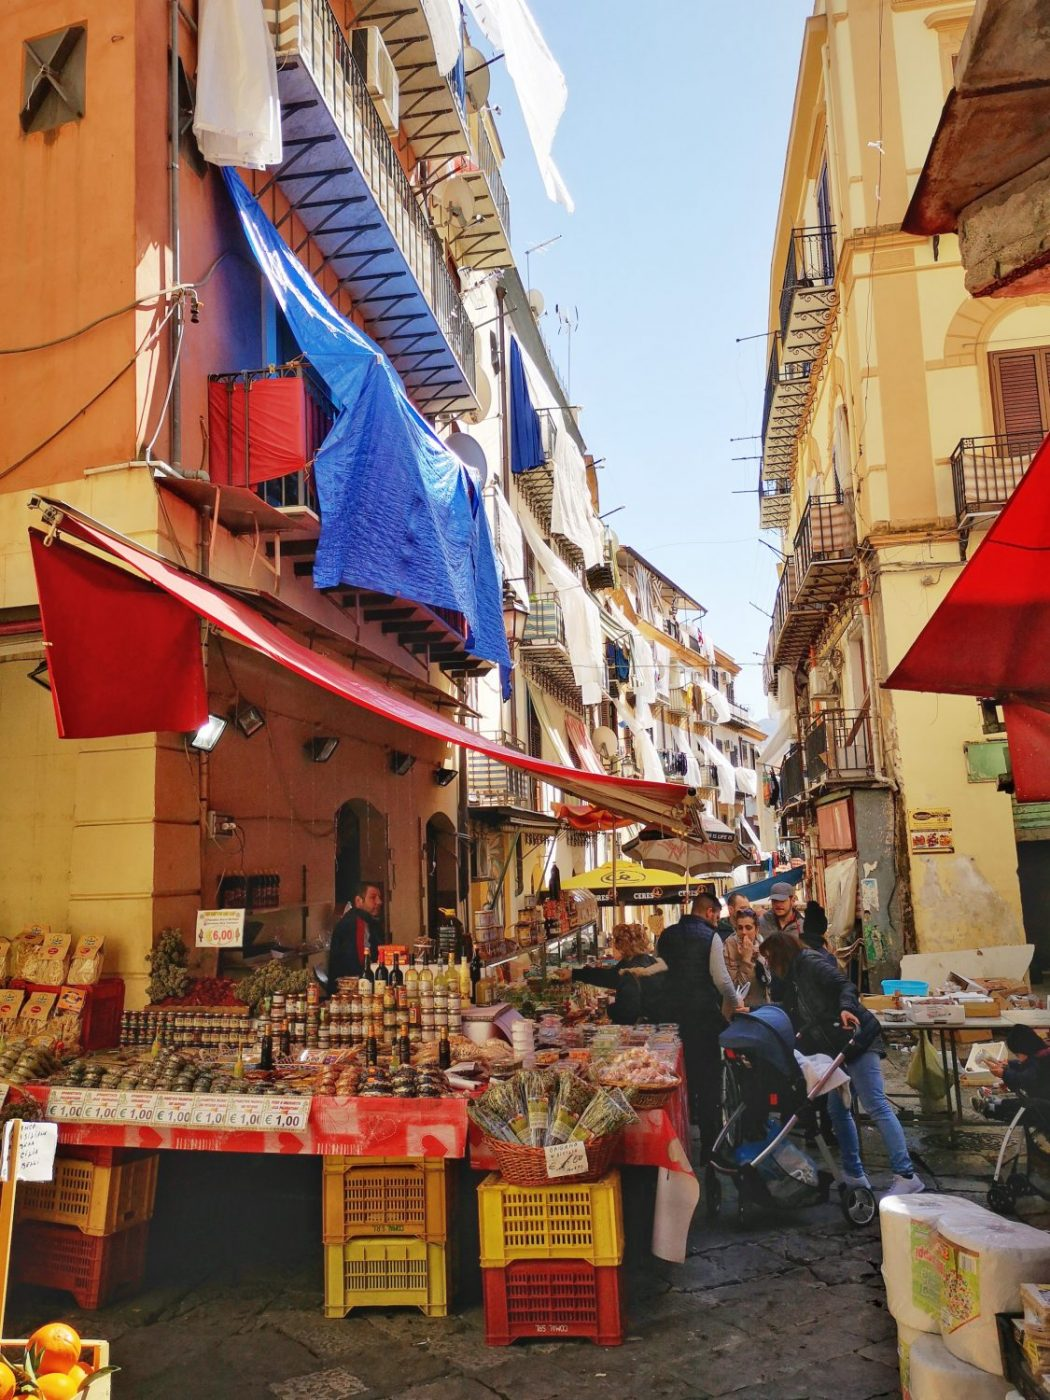 Tasting the Best Street Food in Sicily on a Palermo Street Food Tour